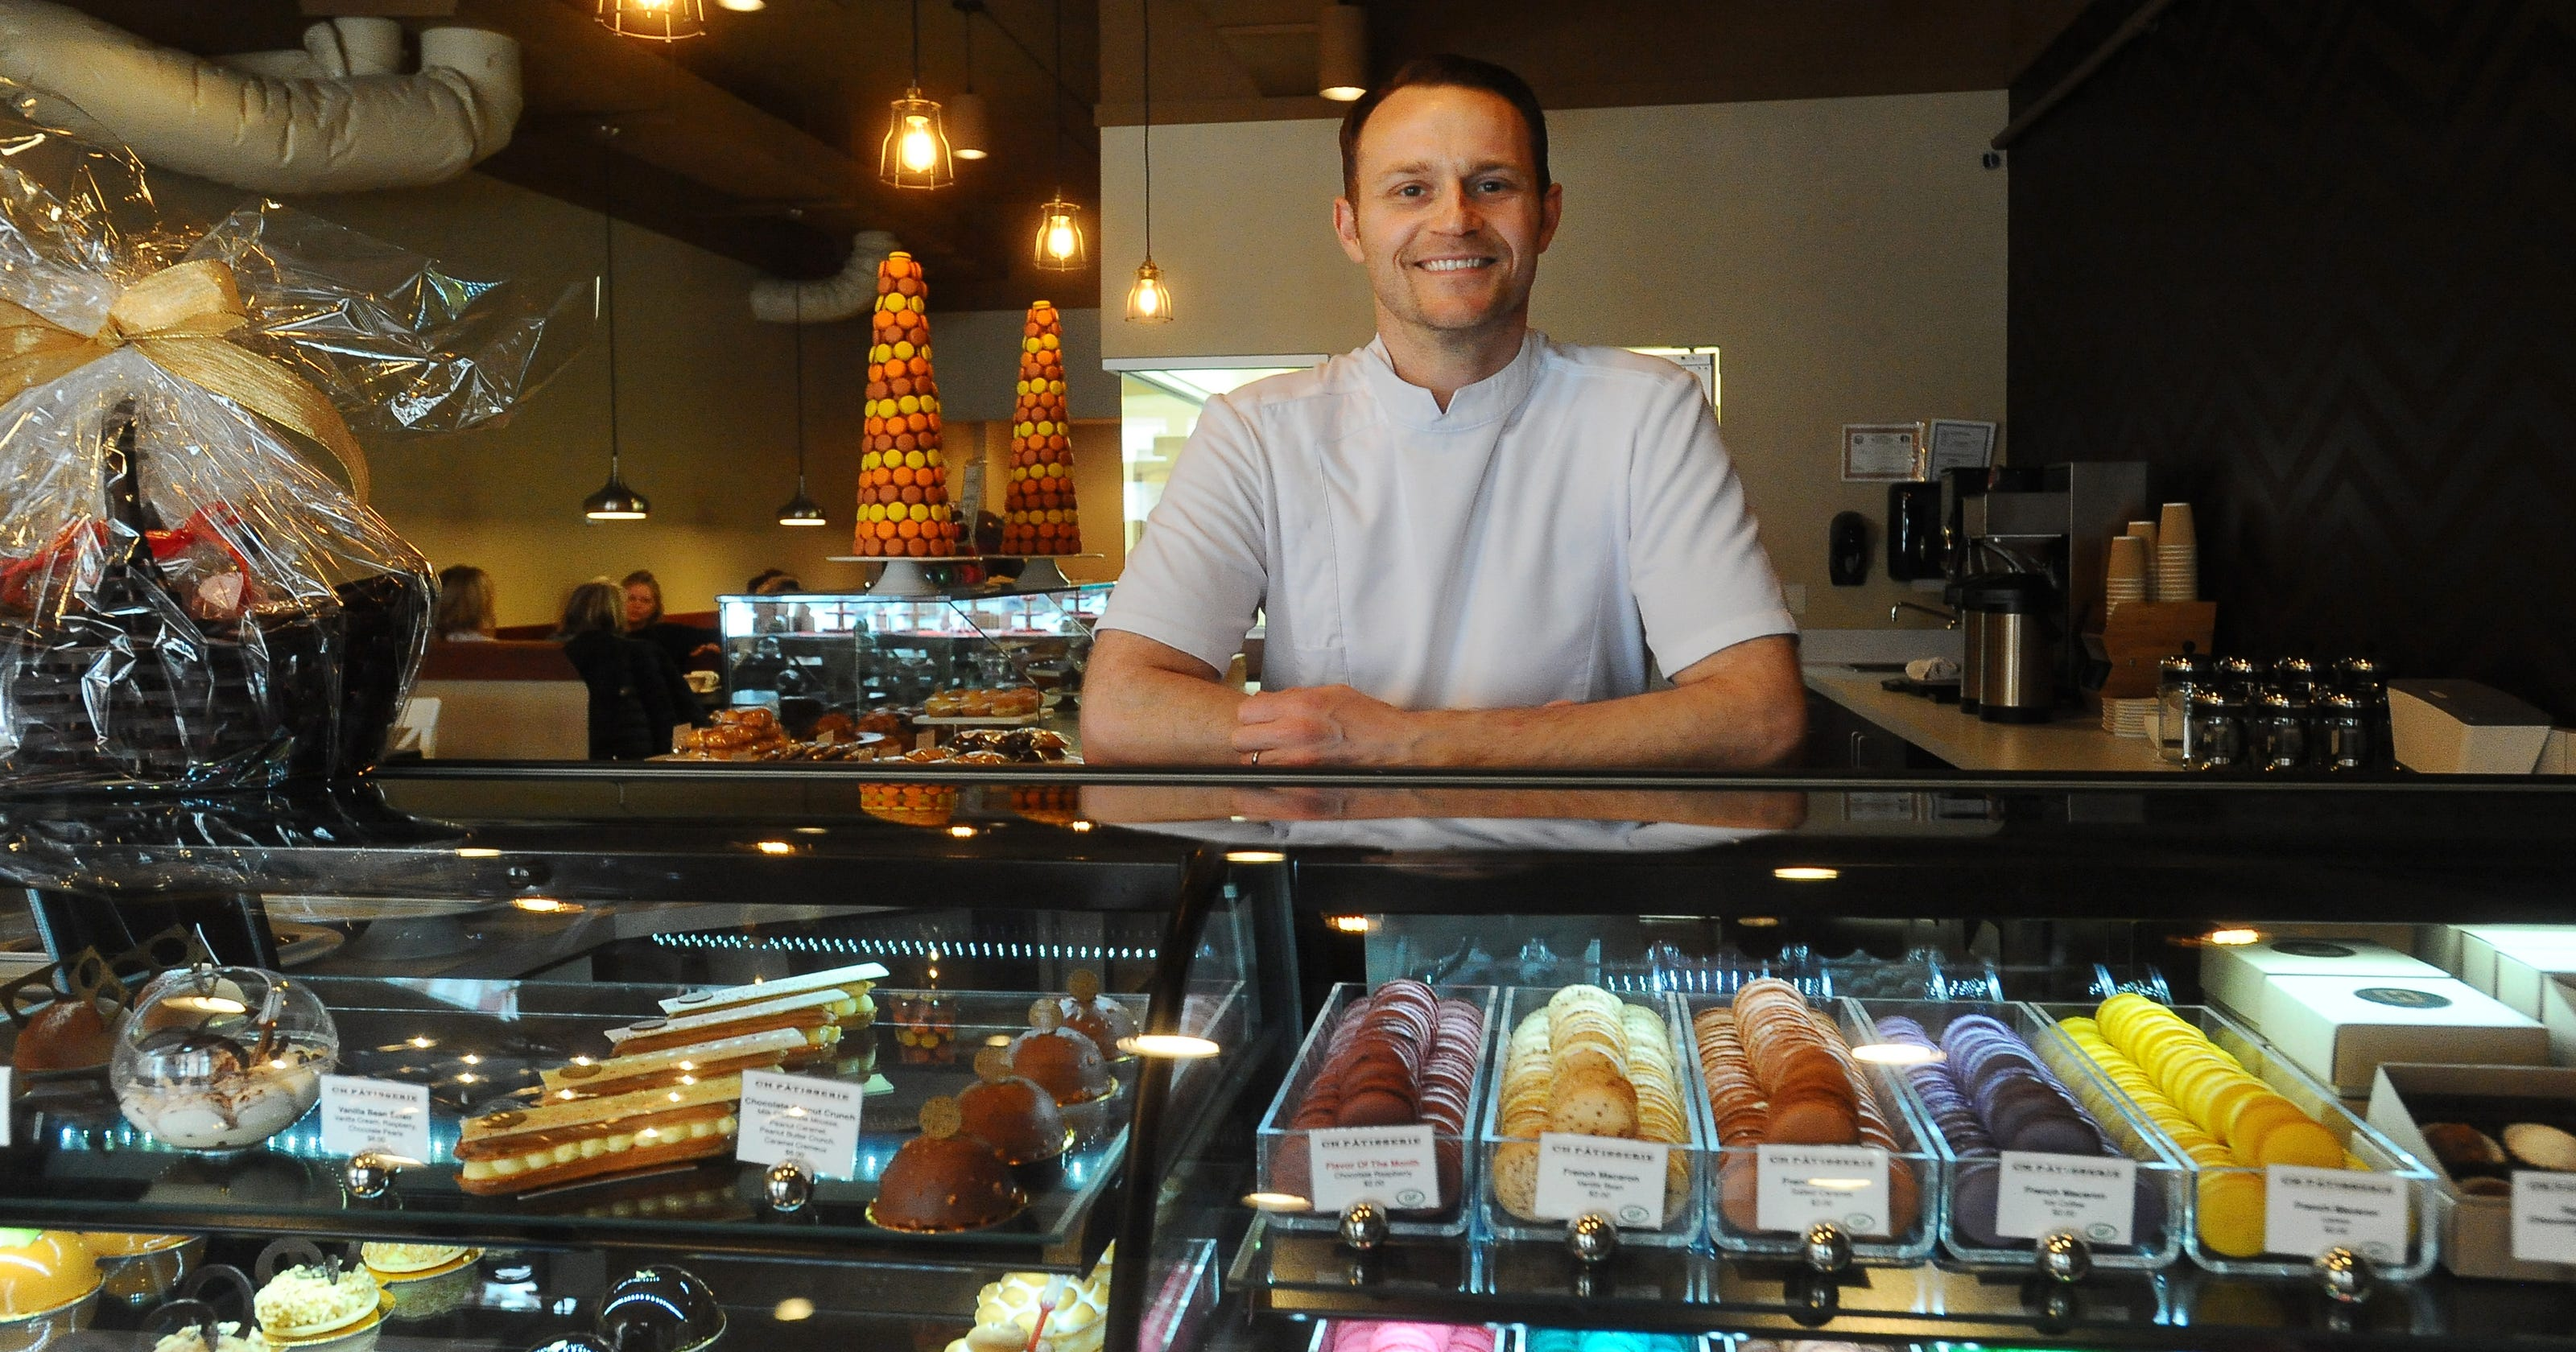 CH Patisserie named second best in the country